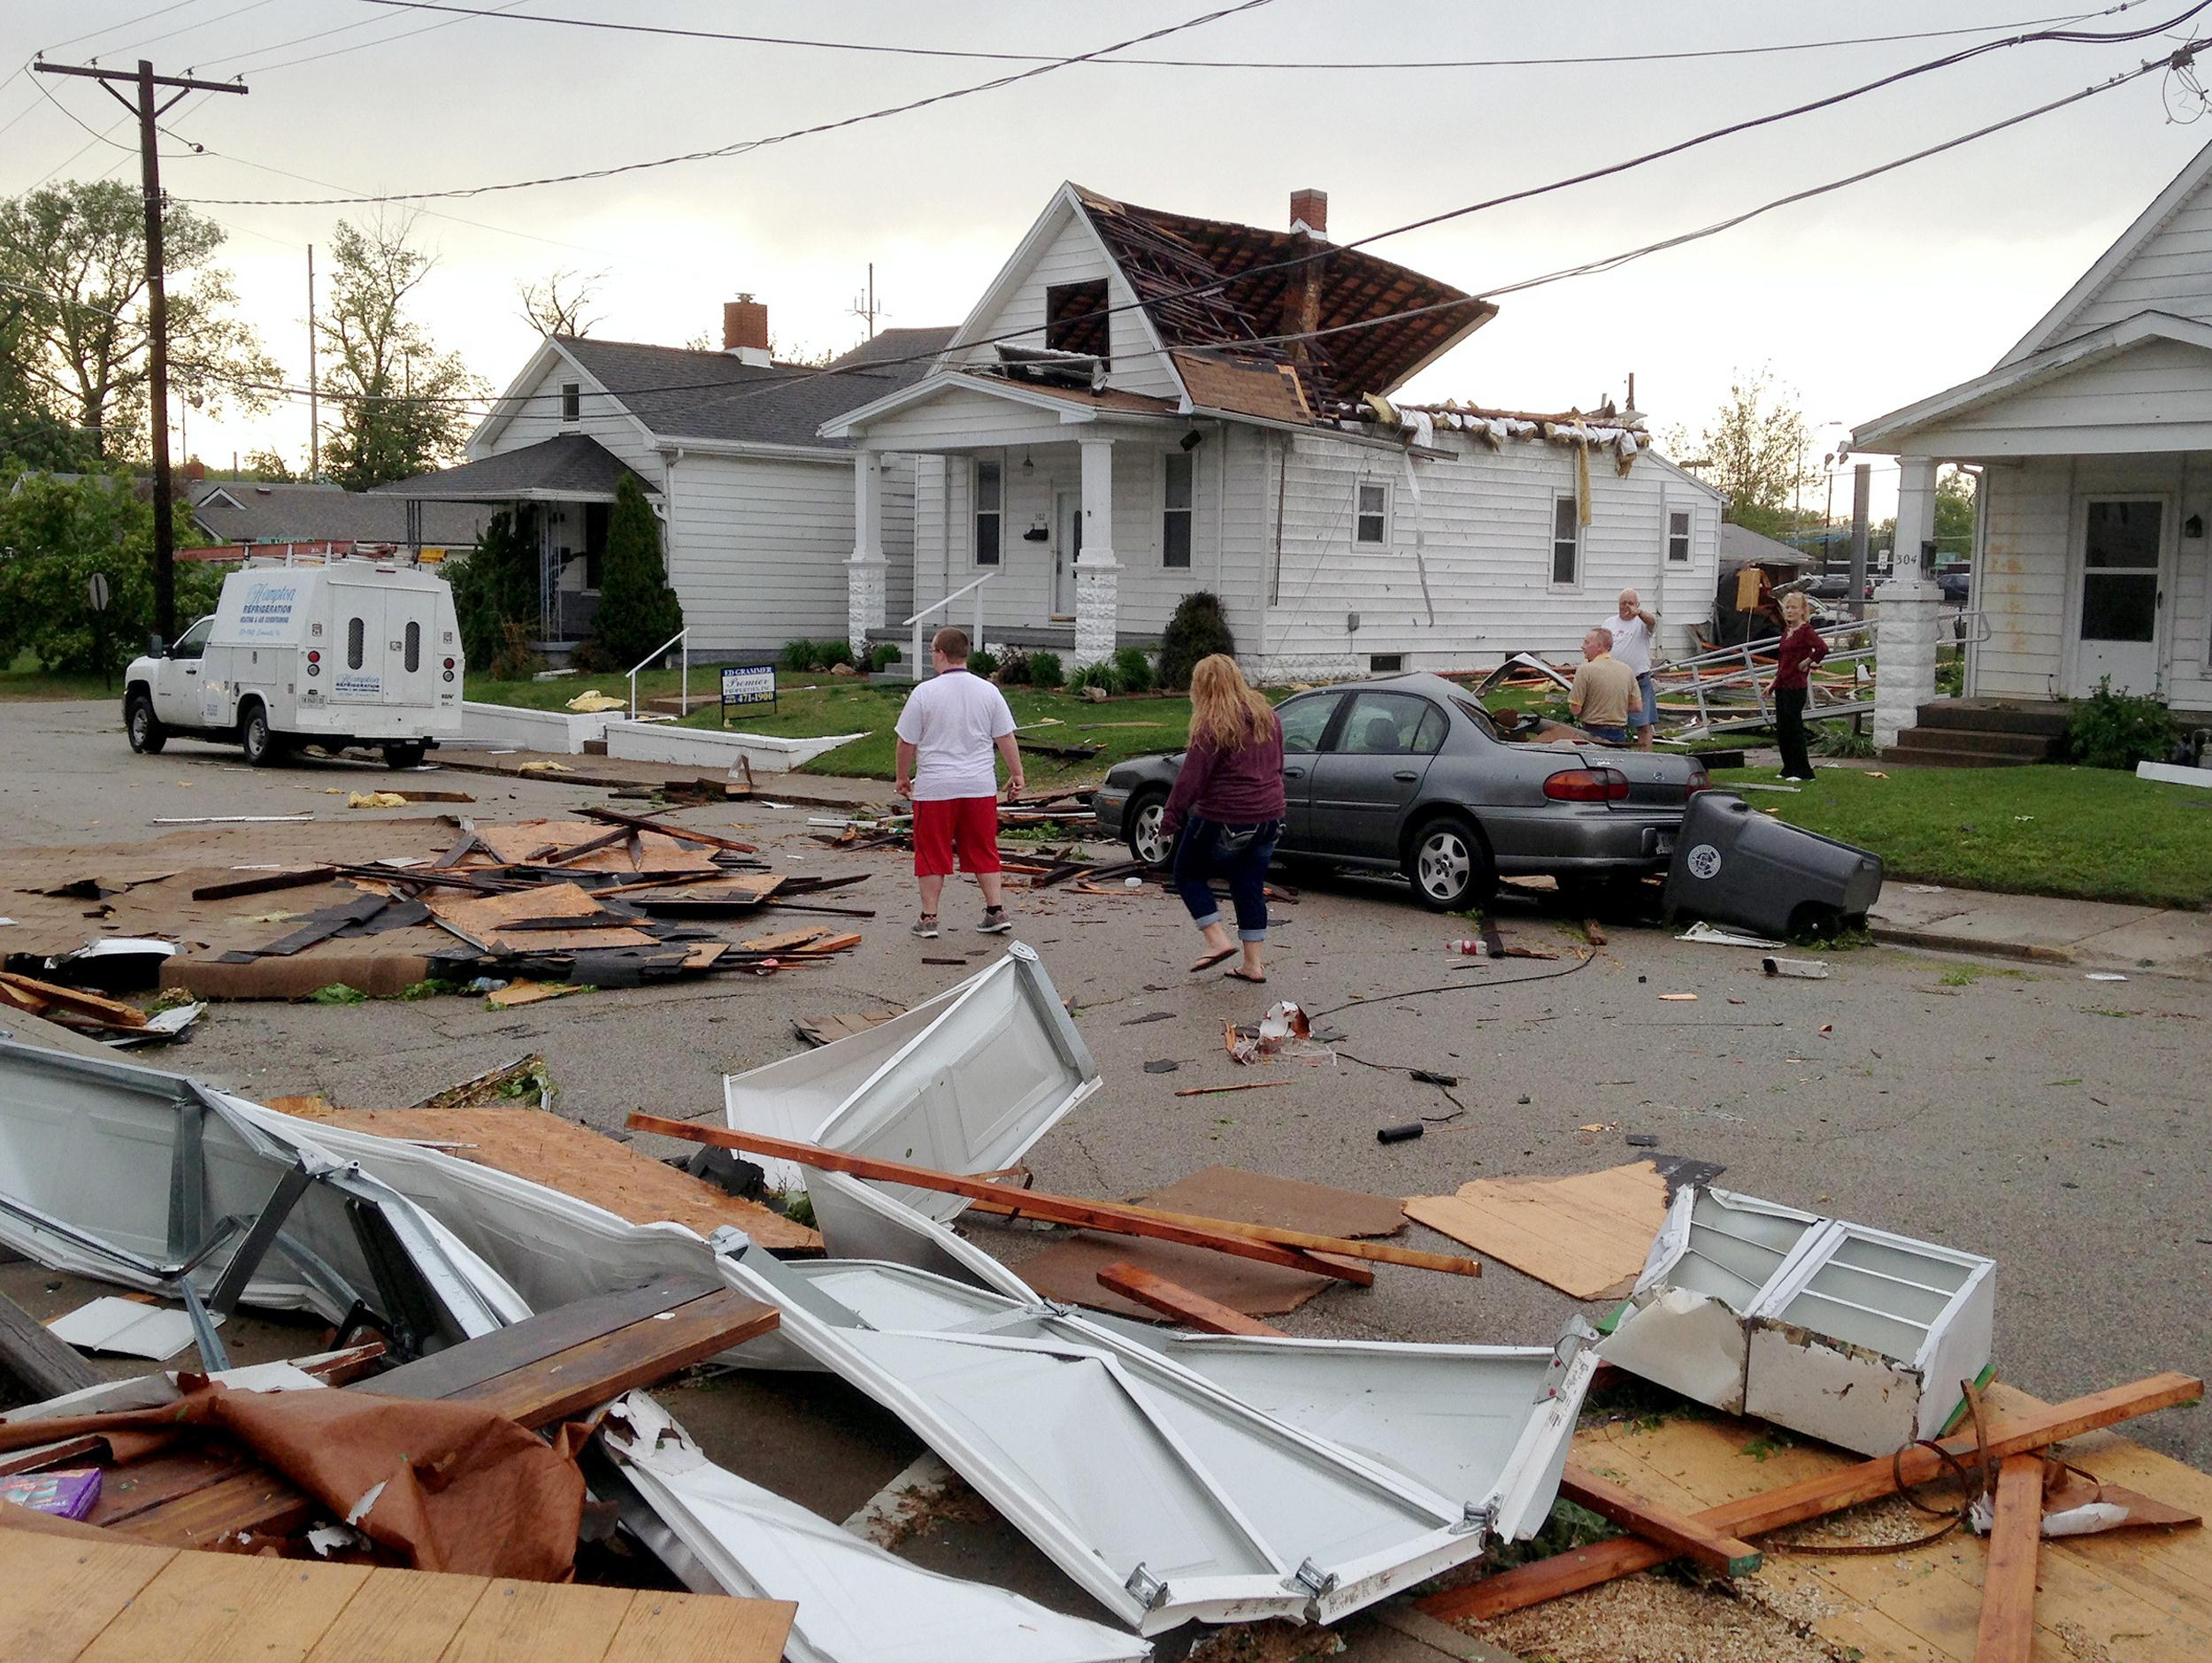 Image: People walk through debris after a storm in Evansville, Ind.